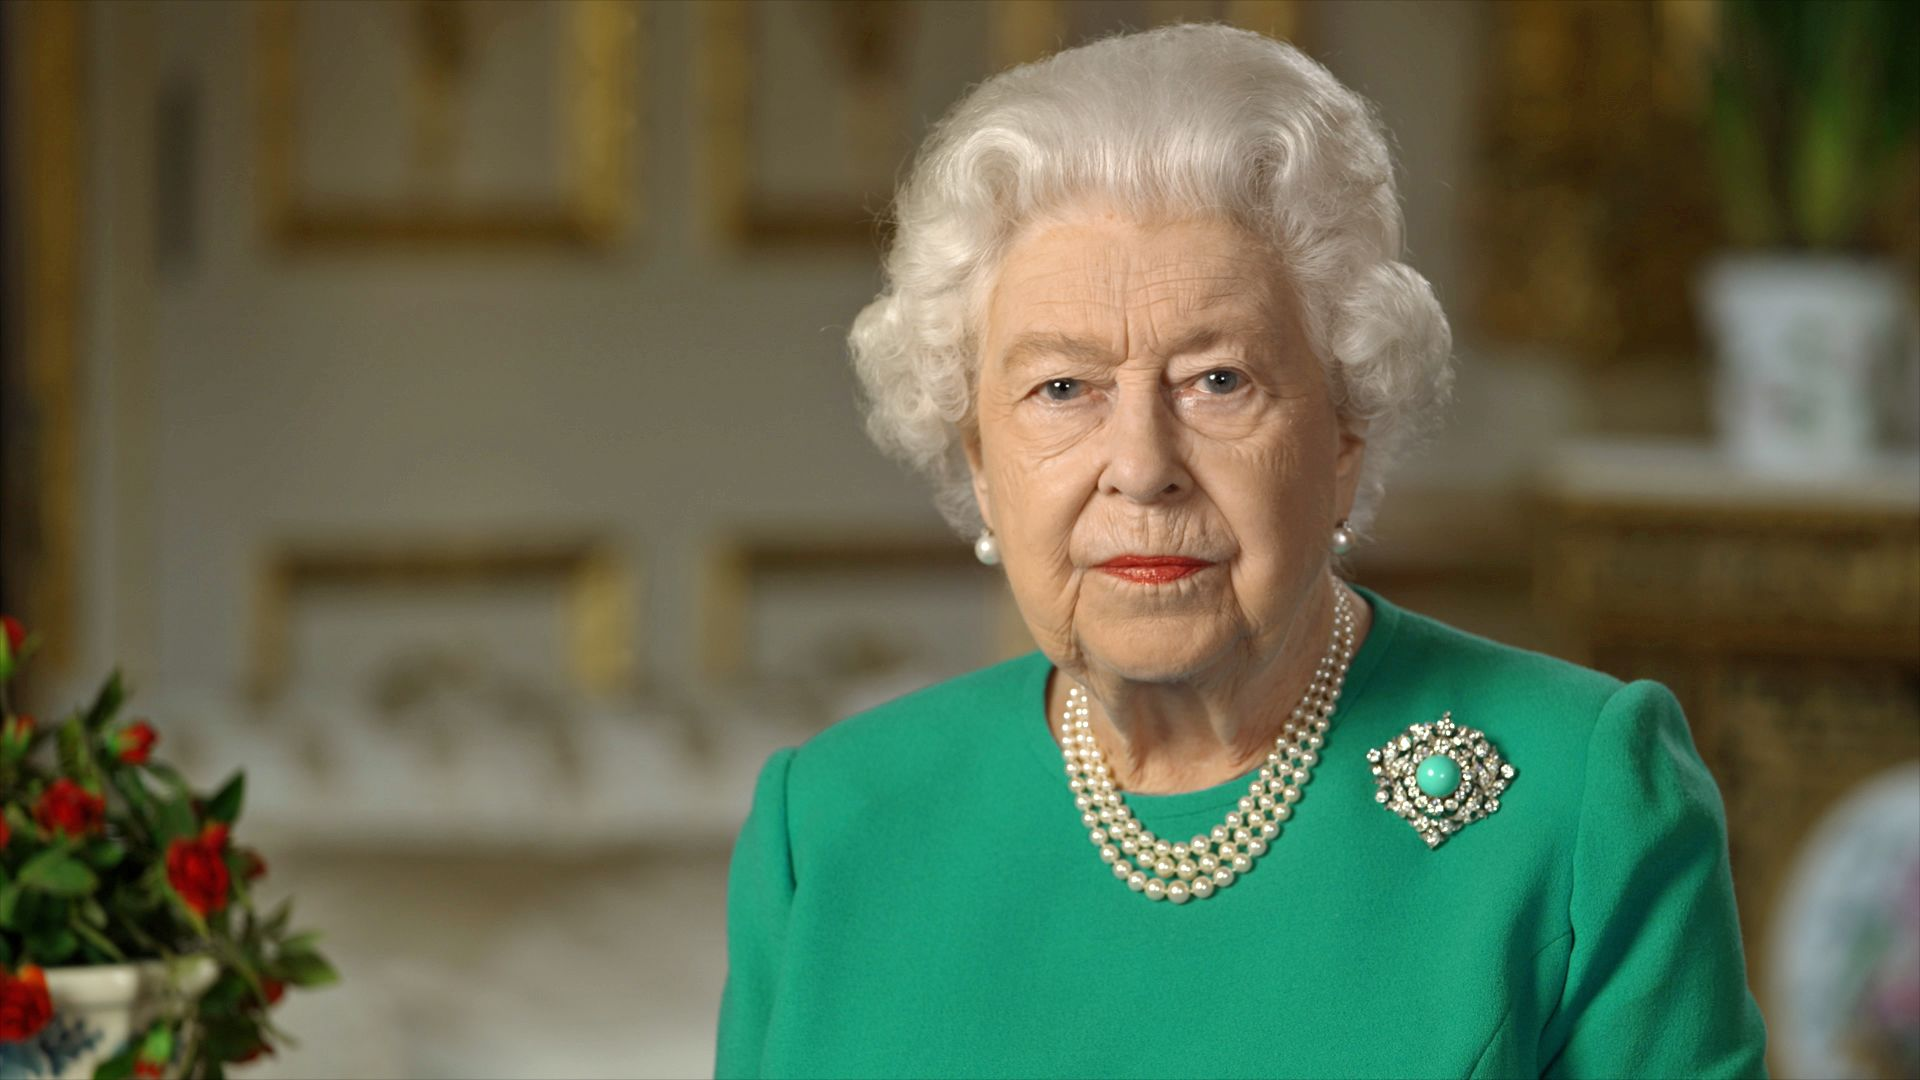 The Subtle Message Queen Elizabeth Sent By Wearing an Unusual Brooch During Her Televised Address